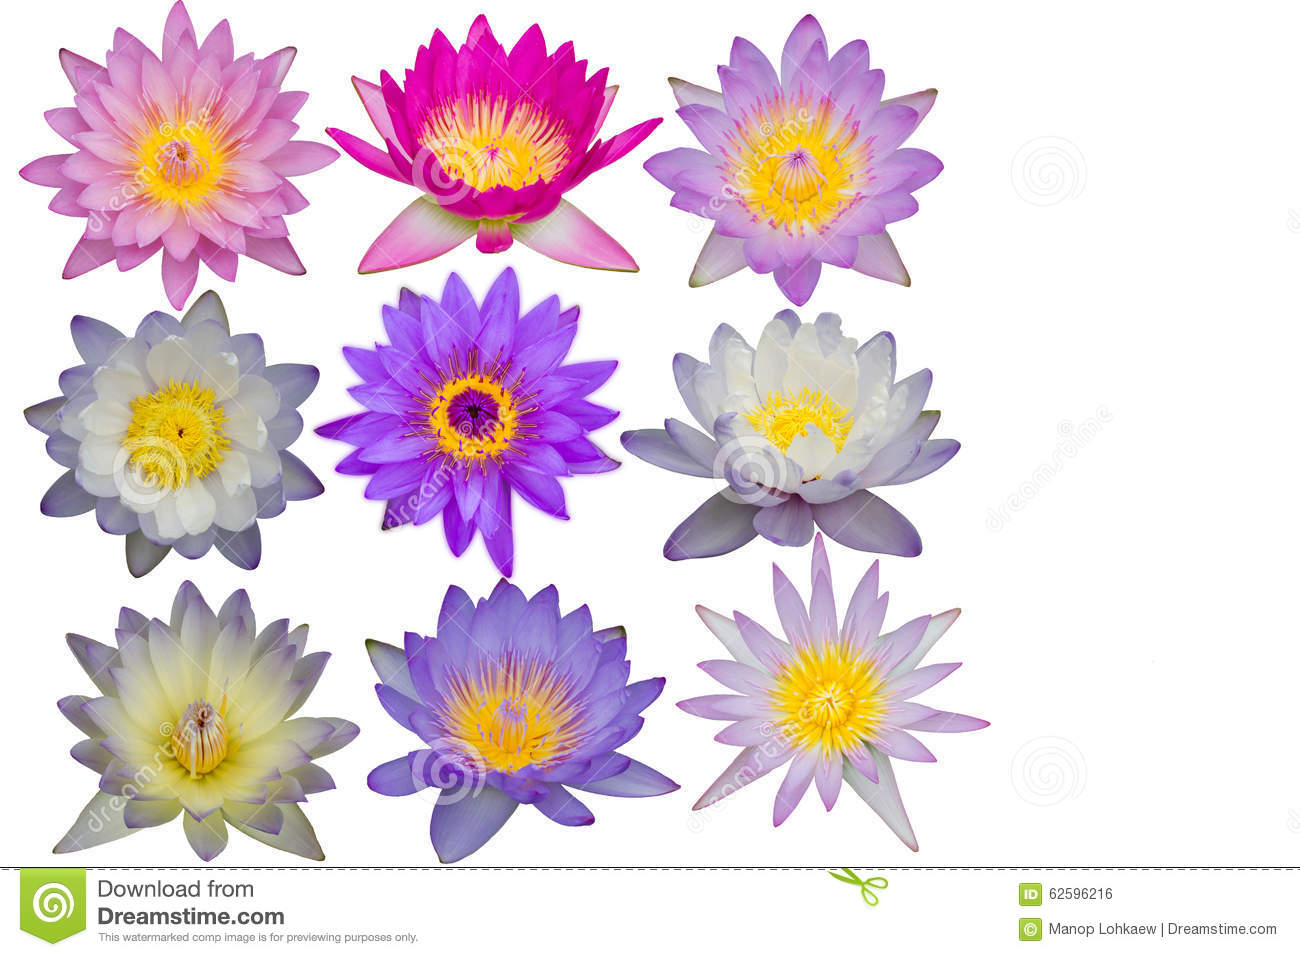 Many kinds of lotus flowers texture isolated on white background download many kinds of lotus flowers texture isolated on white background stock photo image of mightylinksfo